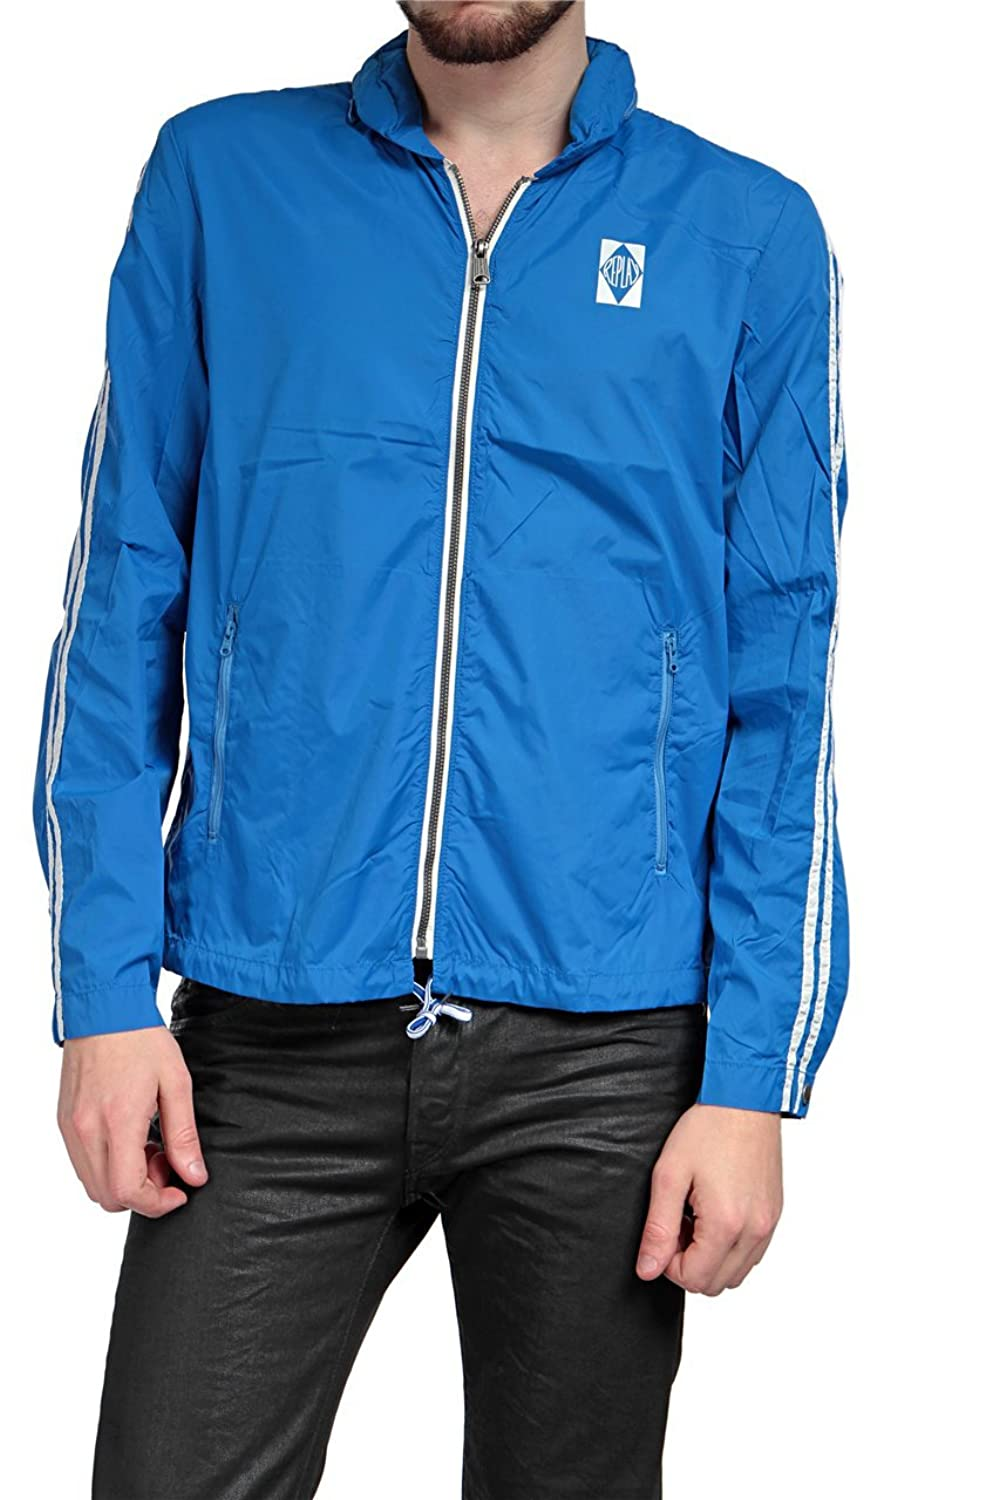 Replay Herren Windjacke , Farbe: Blau